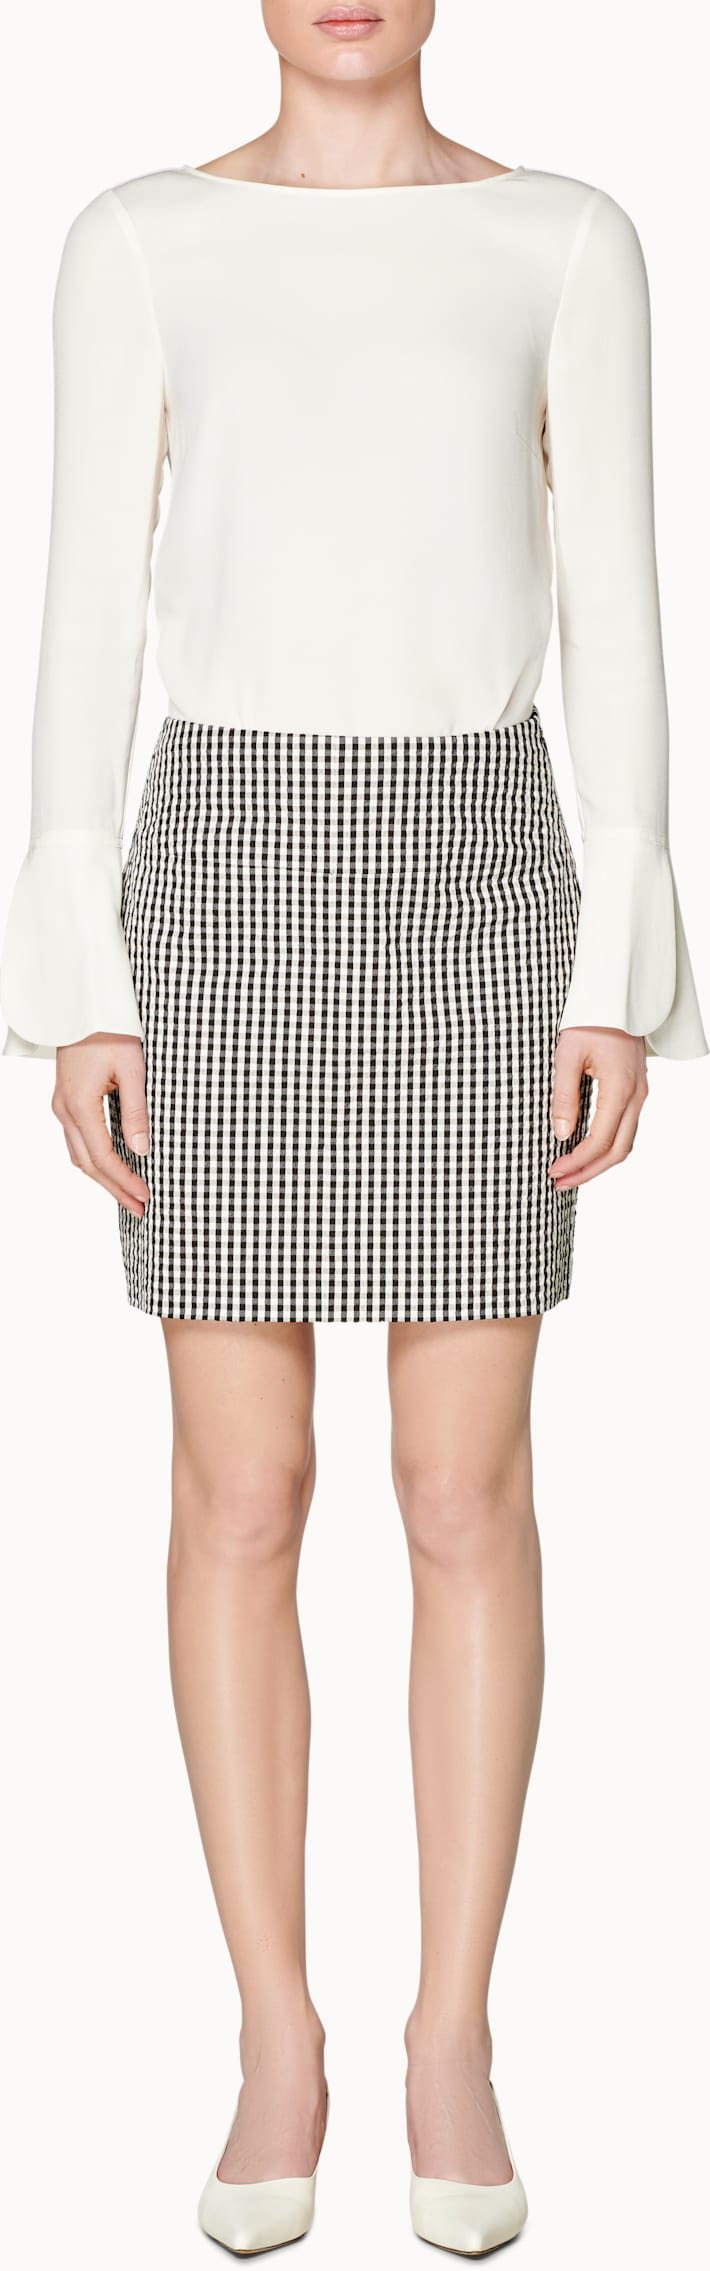 Ace Black & White Gingham Skirt